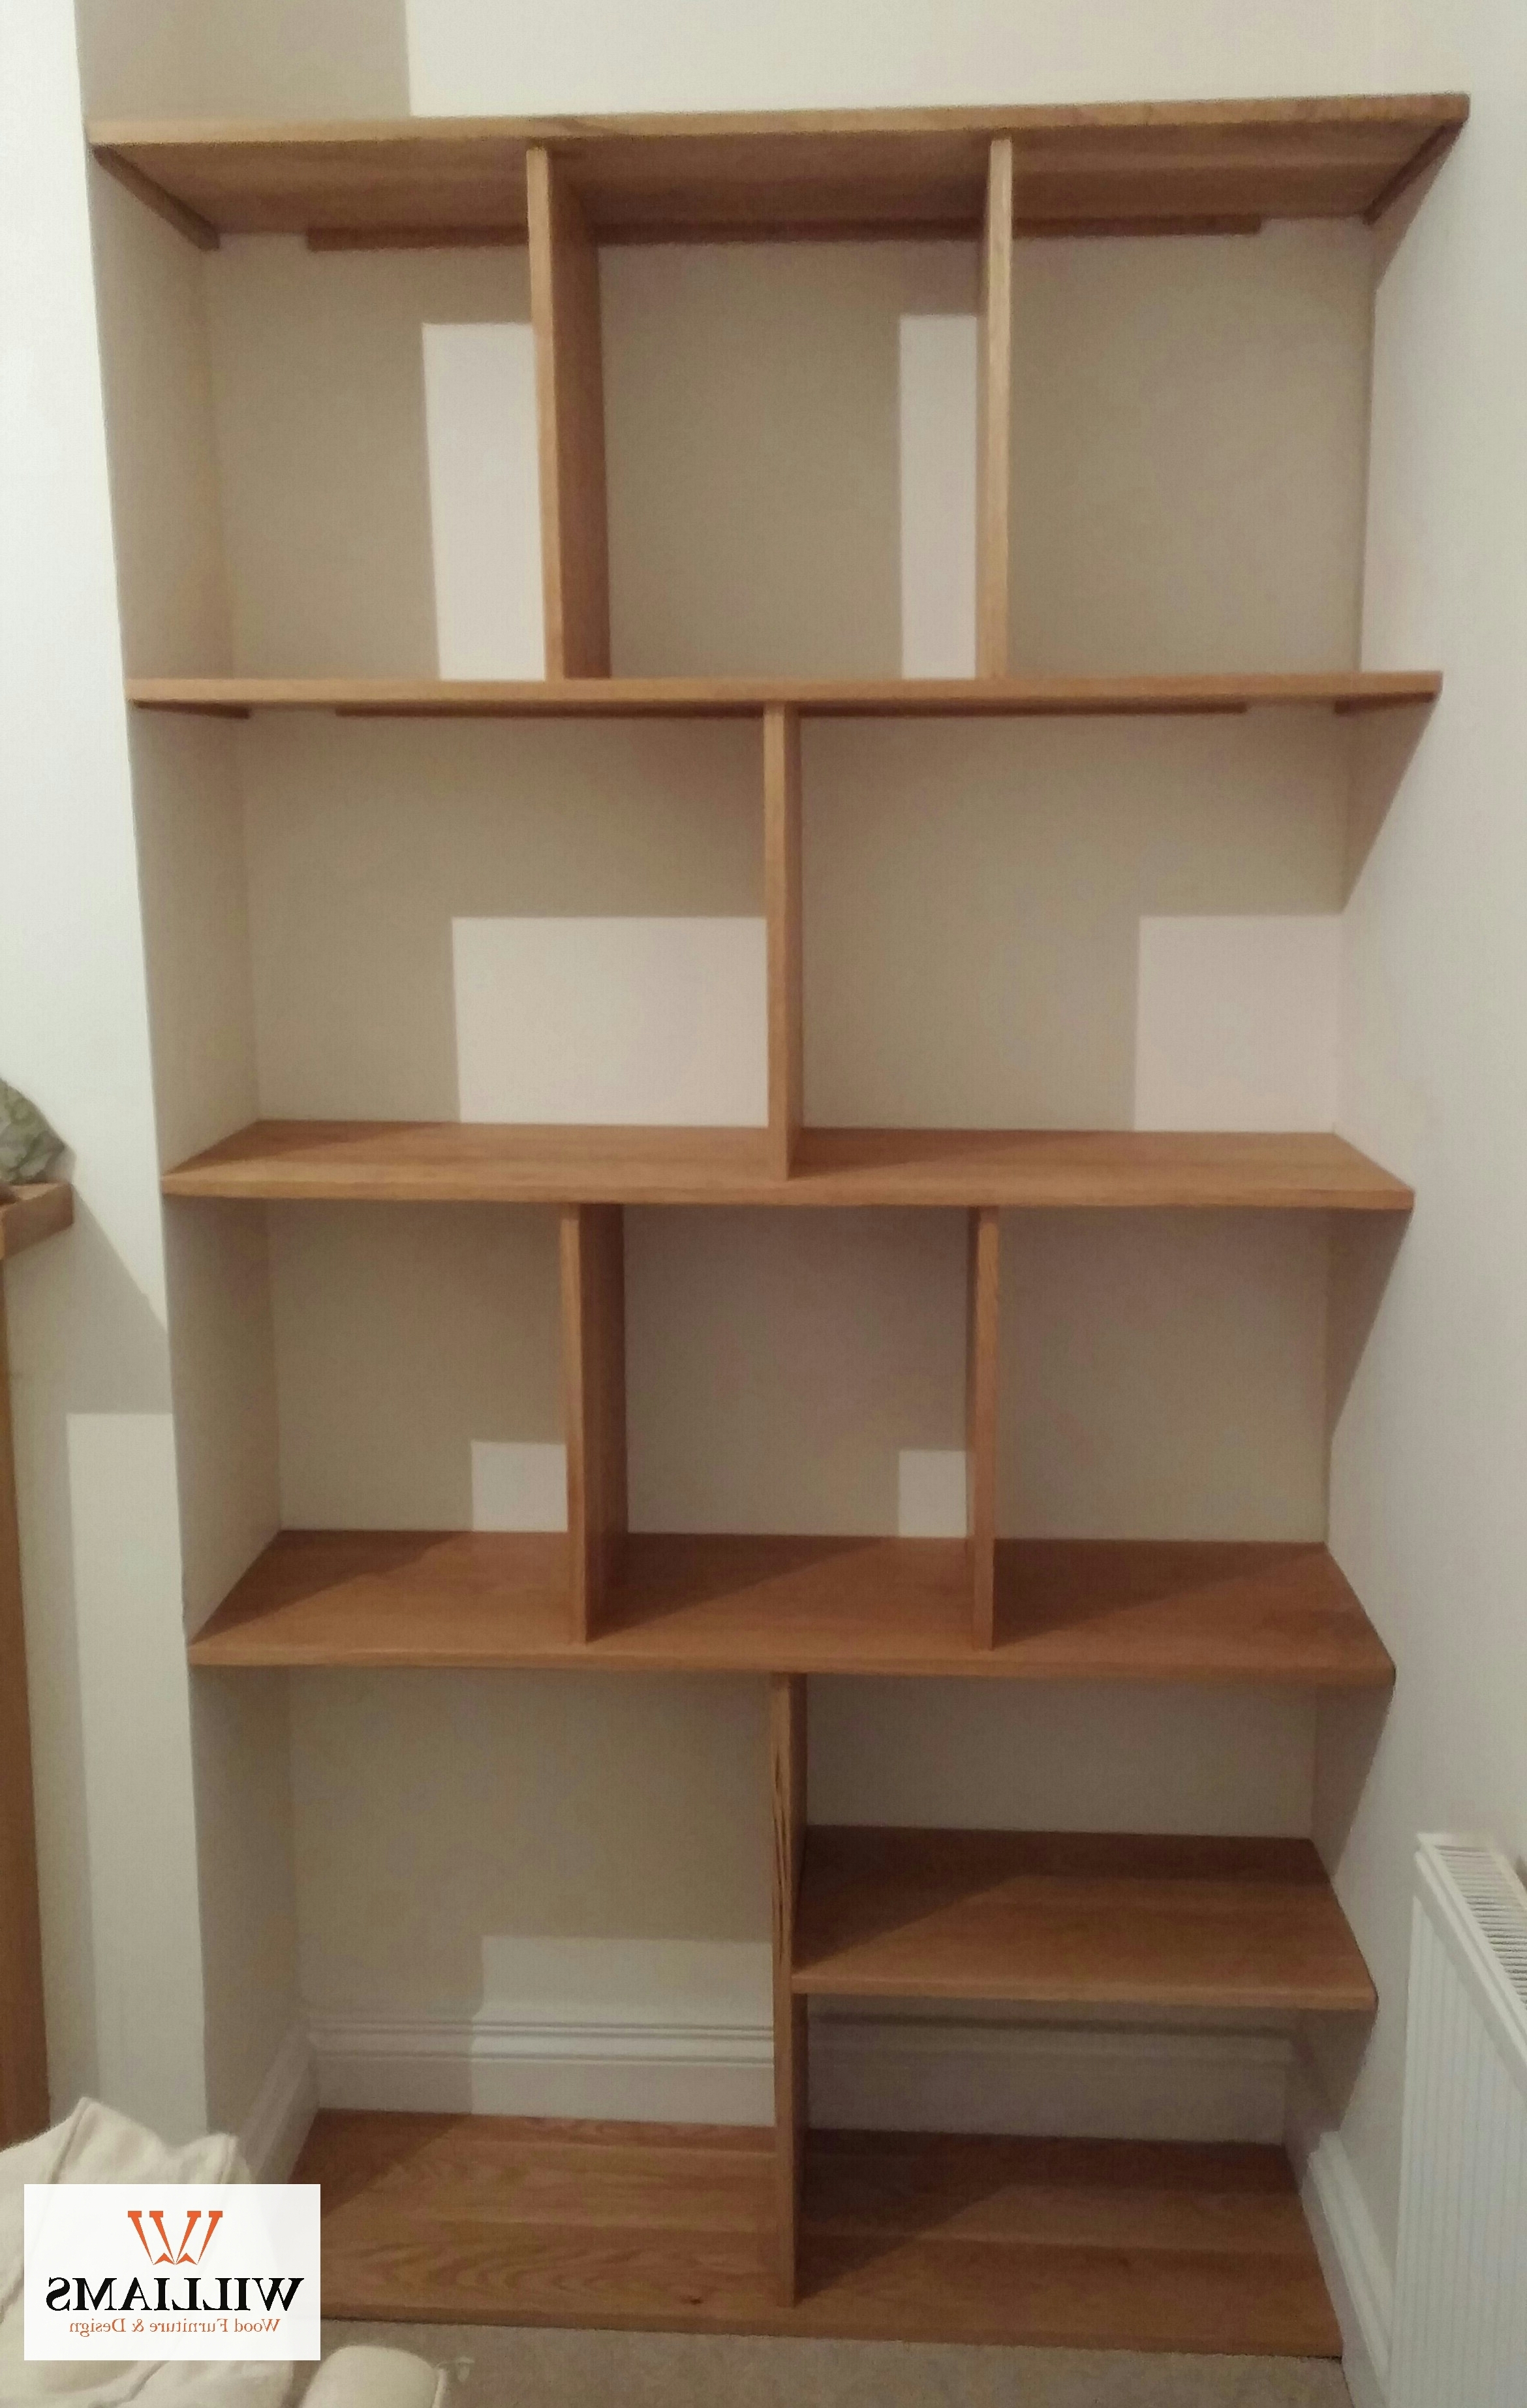 Famous Shelves : Sensational Wp Pro Oak Floating Shelves Veneered Stephen Within Fitted Shelving Systems (View 5 of 15)